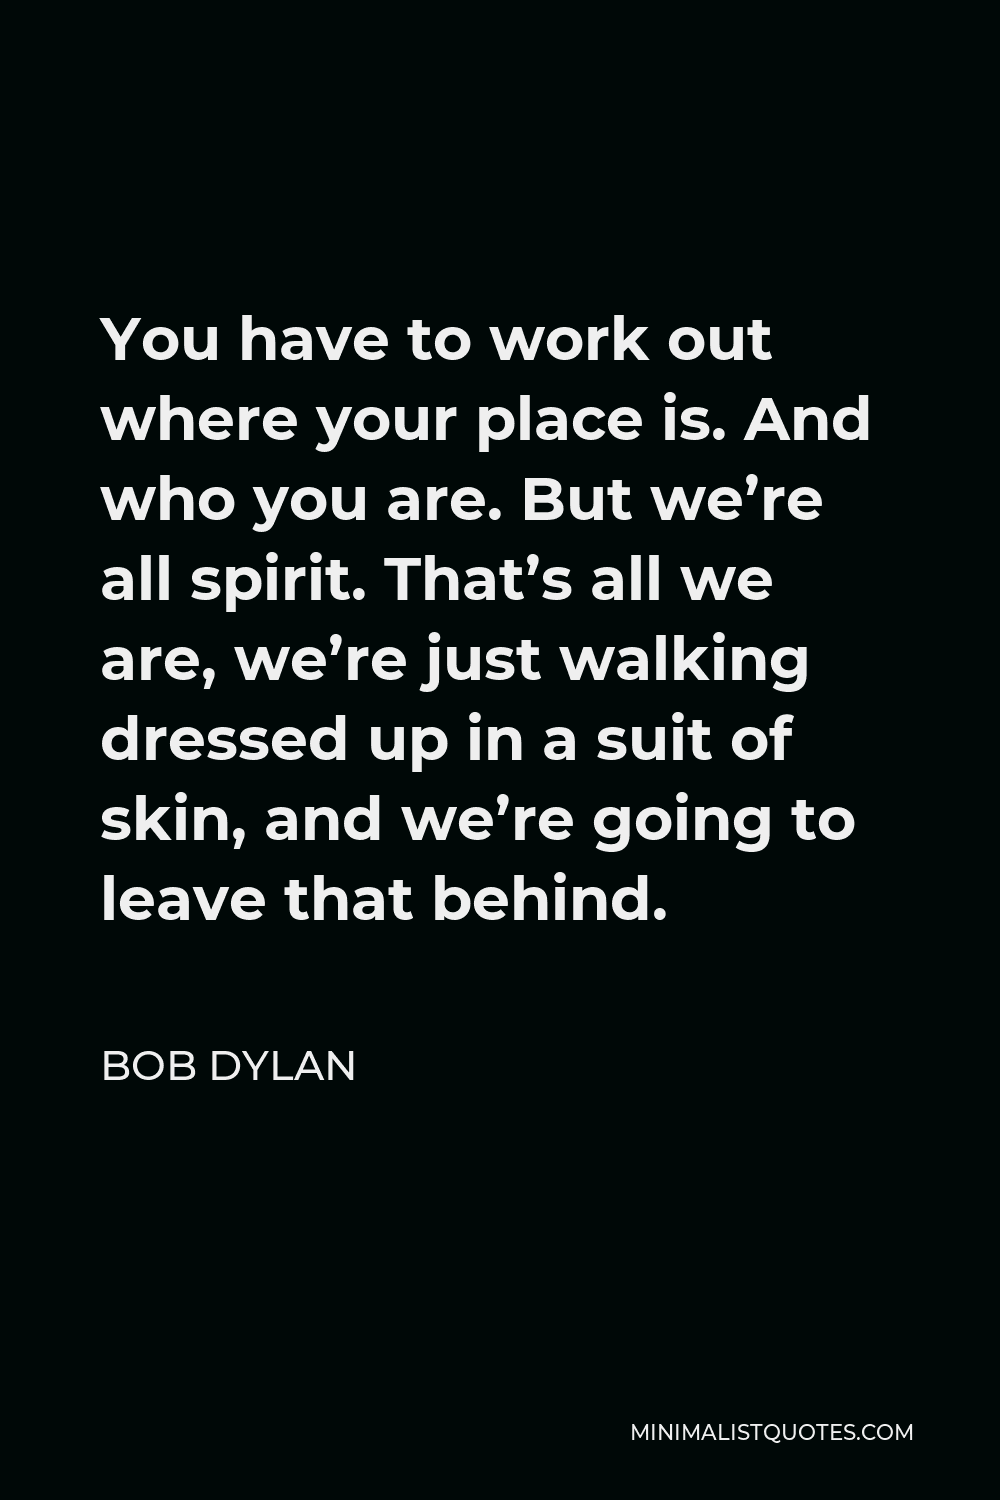 Bob Dylan Quote - You have to work out where your place is. And who you are. But we're all spirit. That's all we are, we're just walking dressed up in a suit of skin, and we're going to leave that behind.